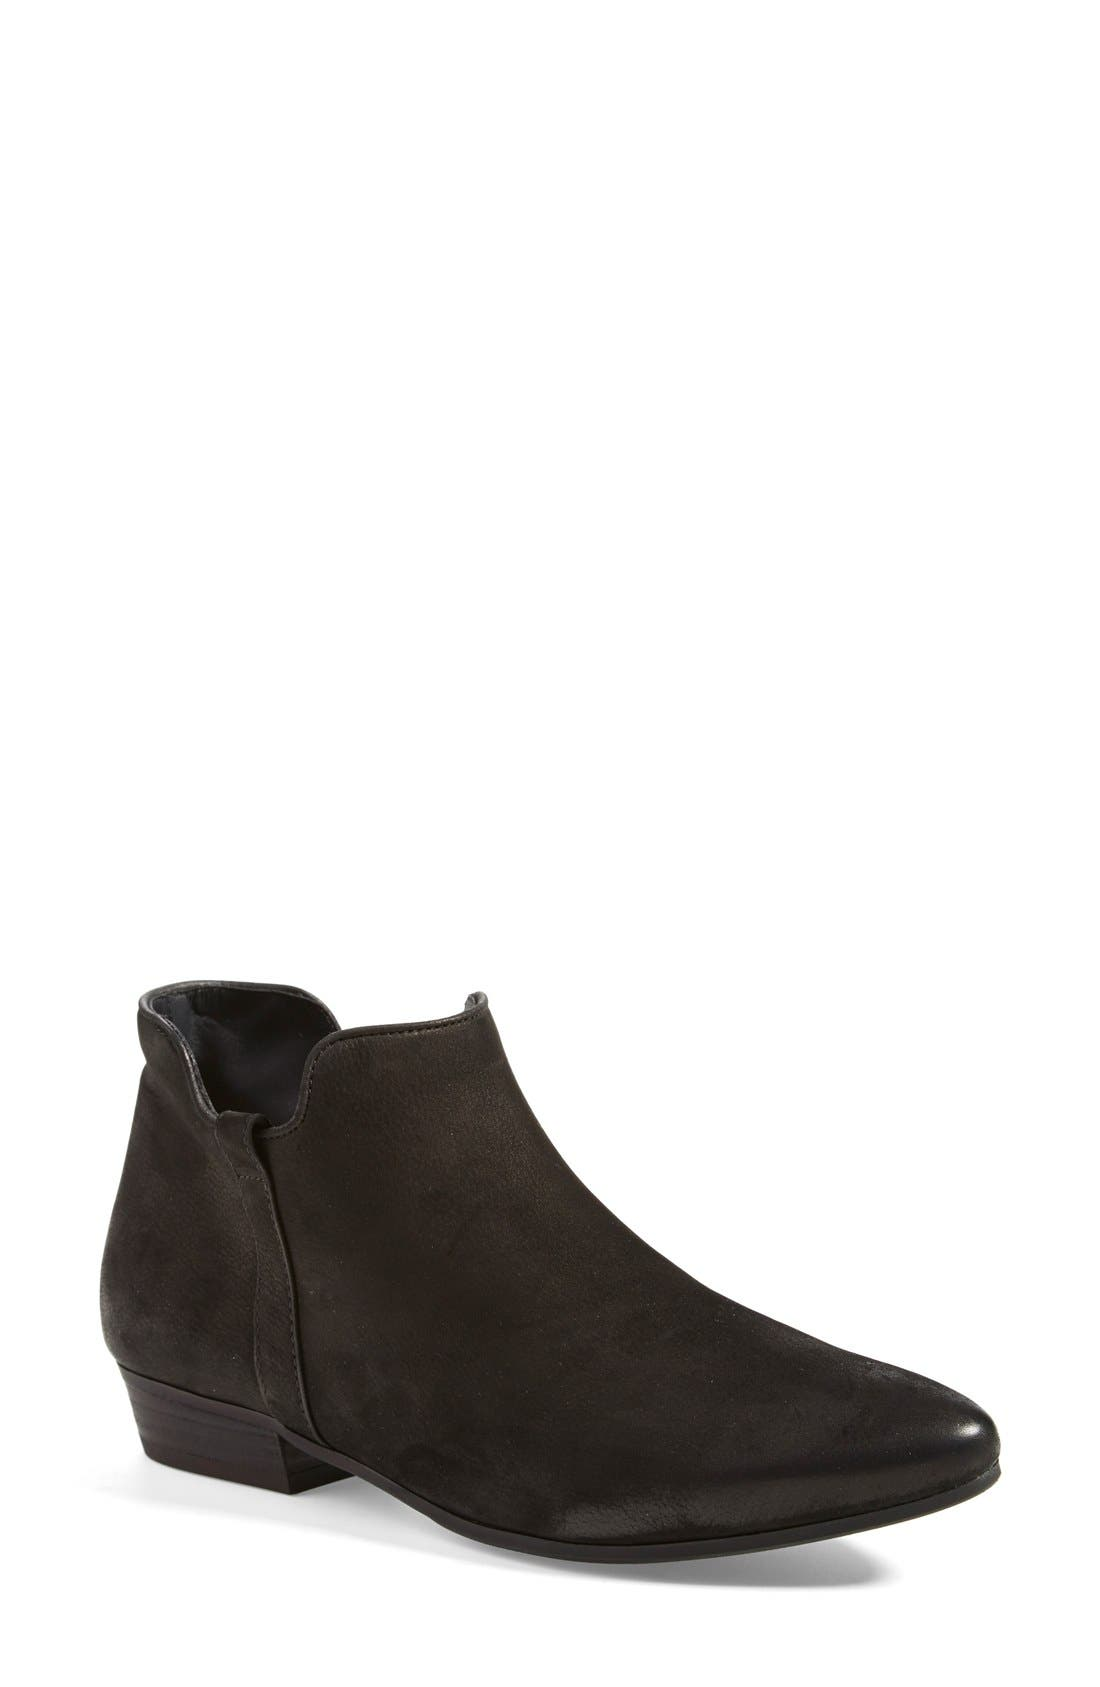 Main Image - Paul Green 'Barnes' Ankle Bootie (Women)